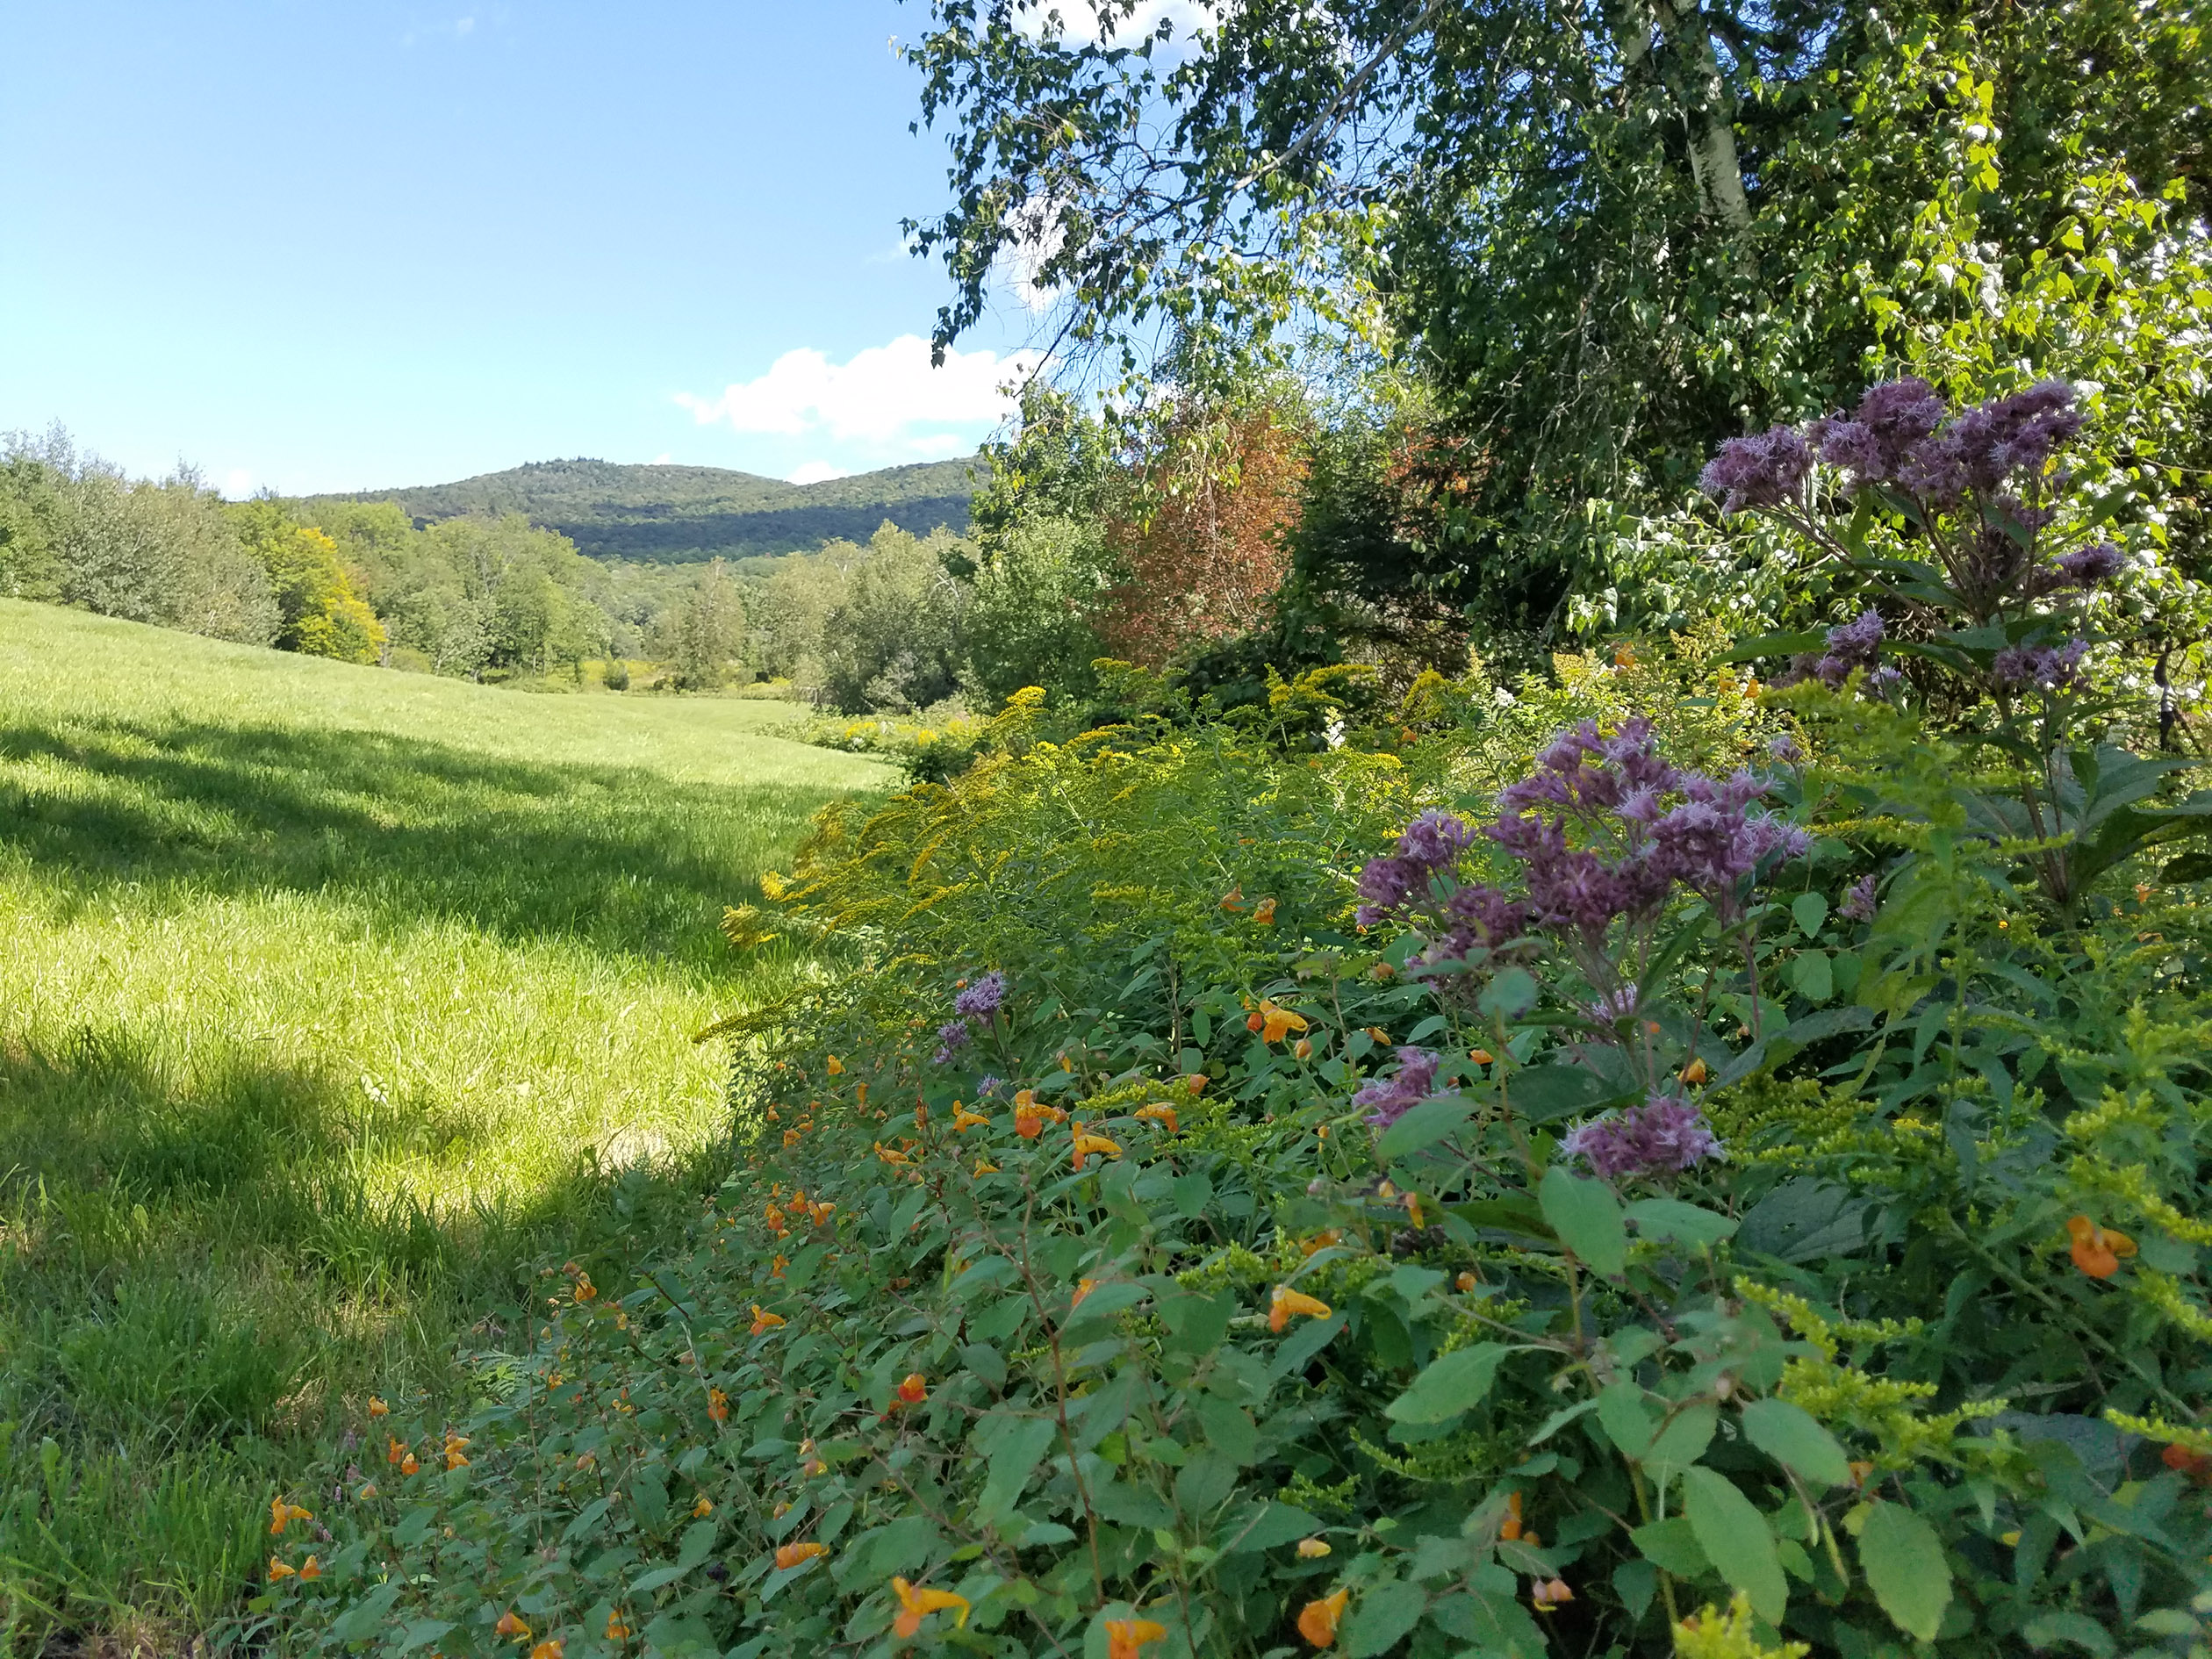 A landscape showing brightly colored wildflowers blooming along the edge of a hayfield, including orange jewelweed, purple joe pye weed, and yellow goldenrod